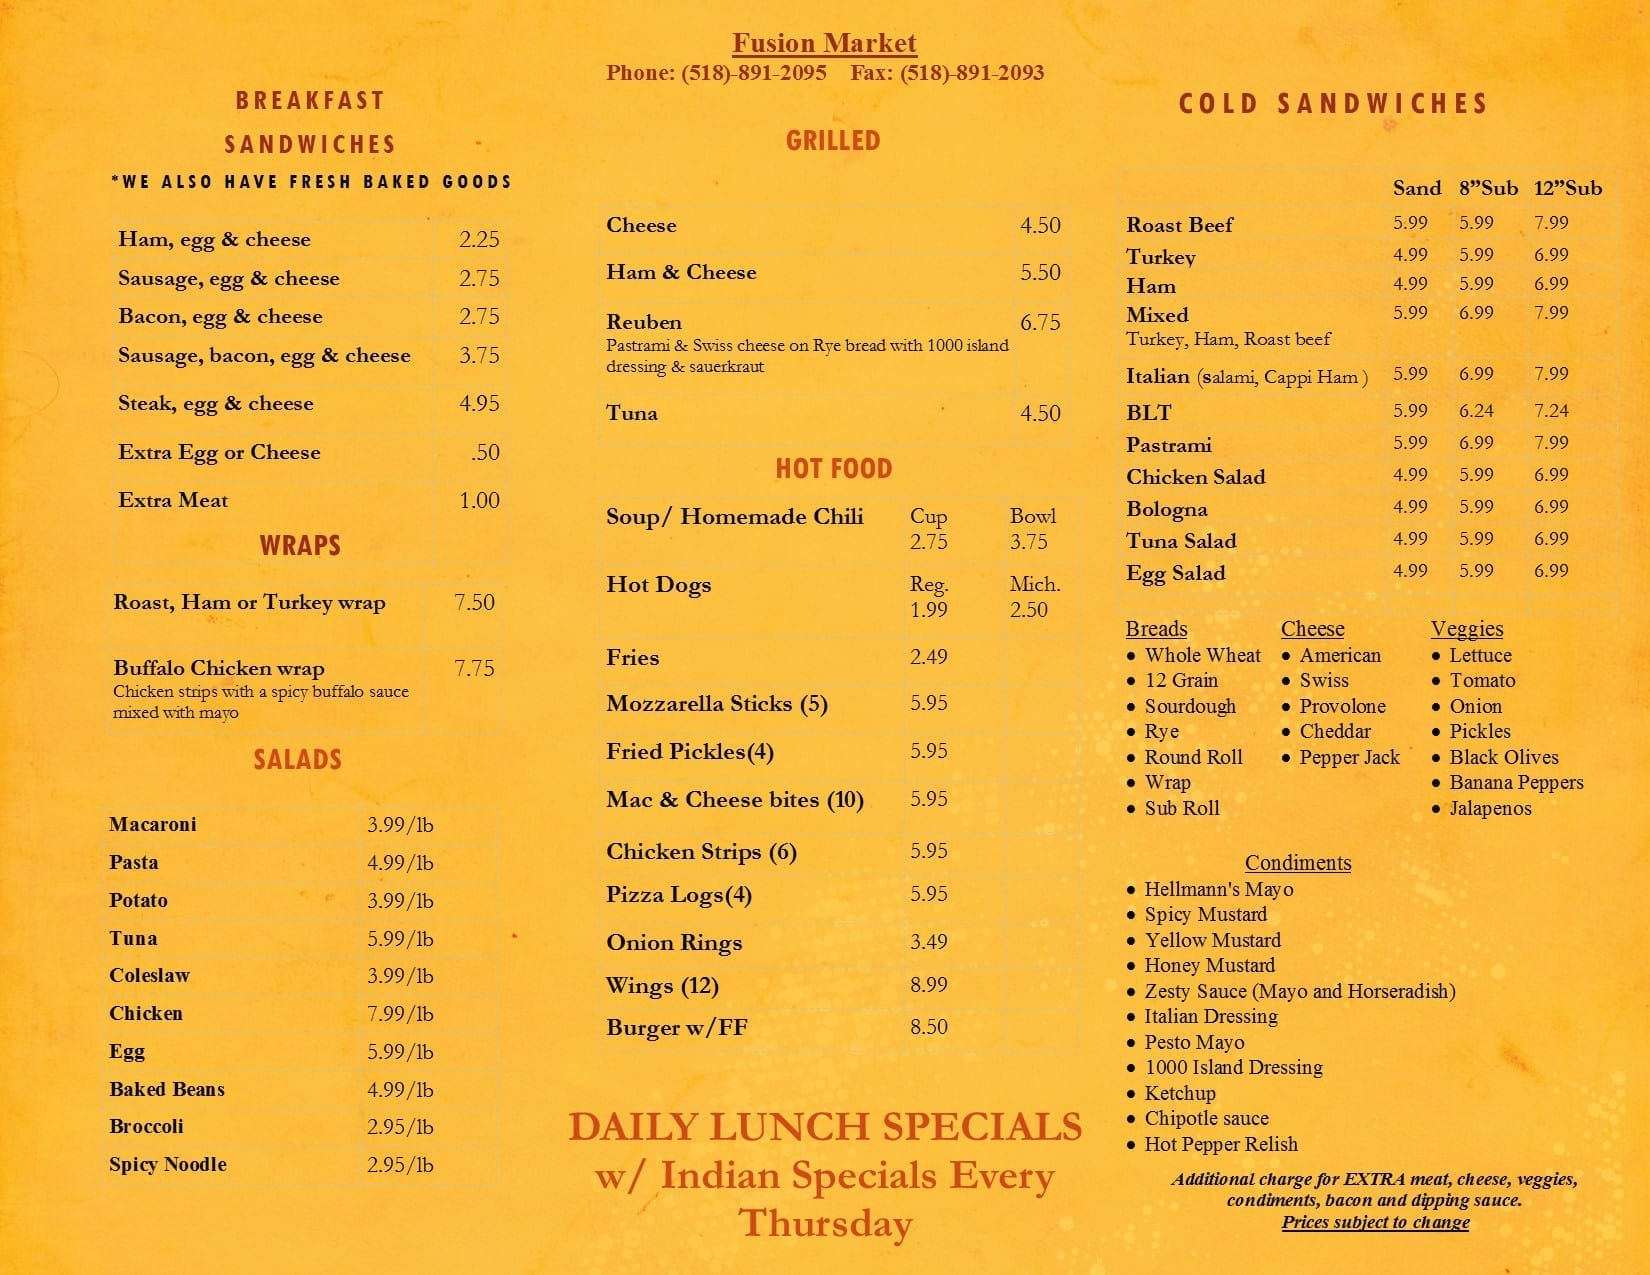 Fusion Market Deli Take-Out menu 2015_Saranac ake ny